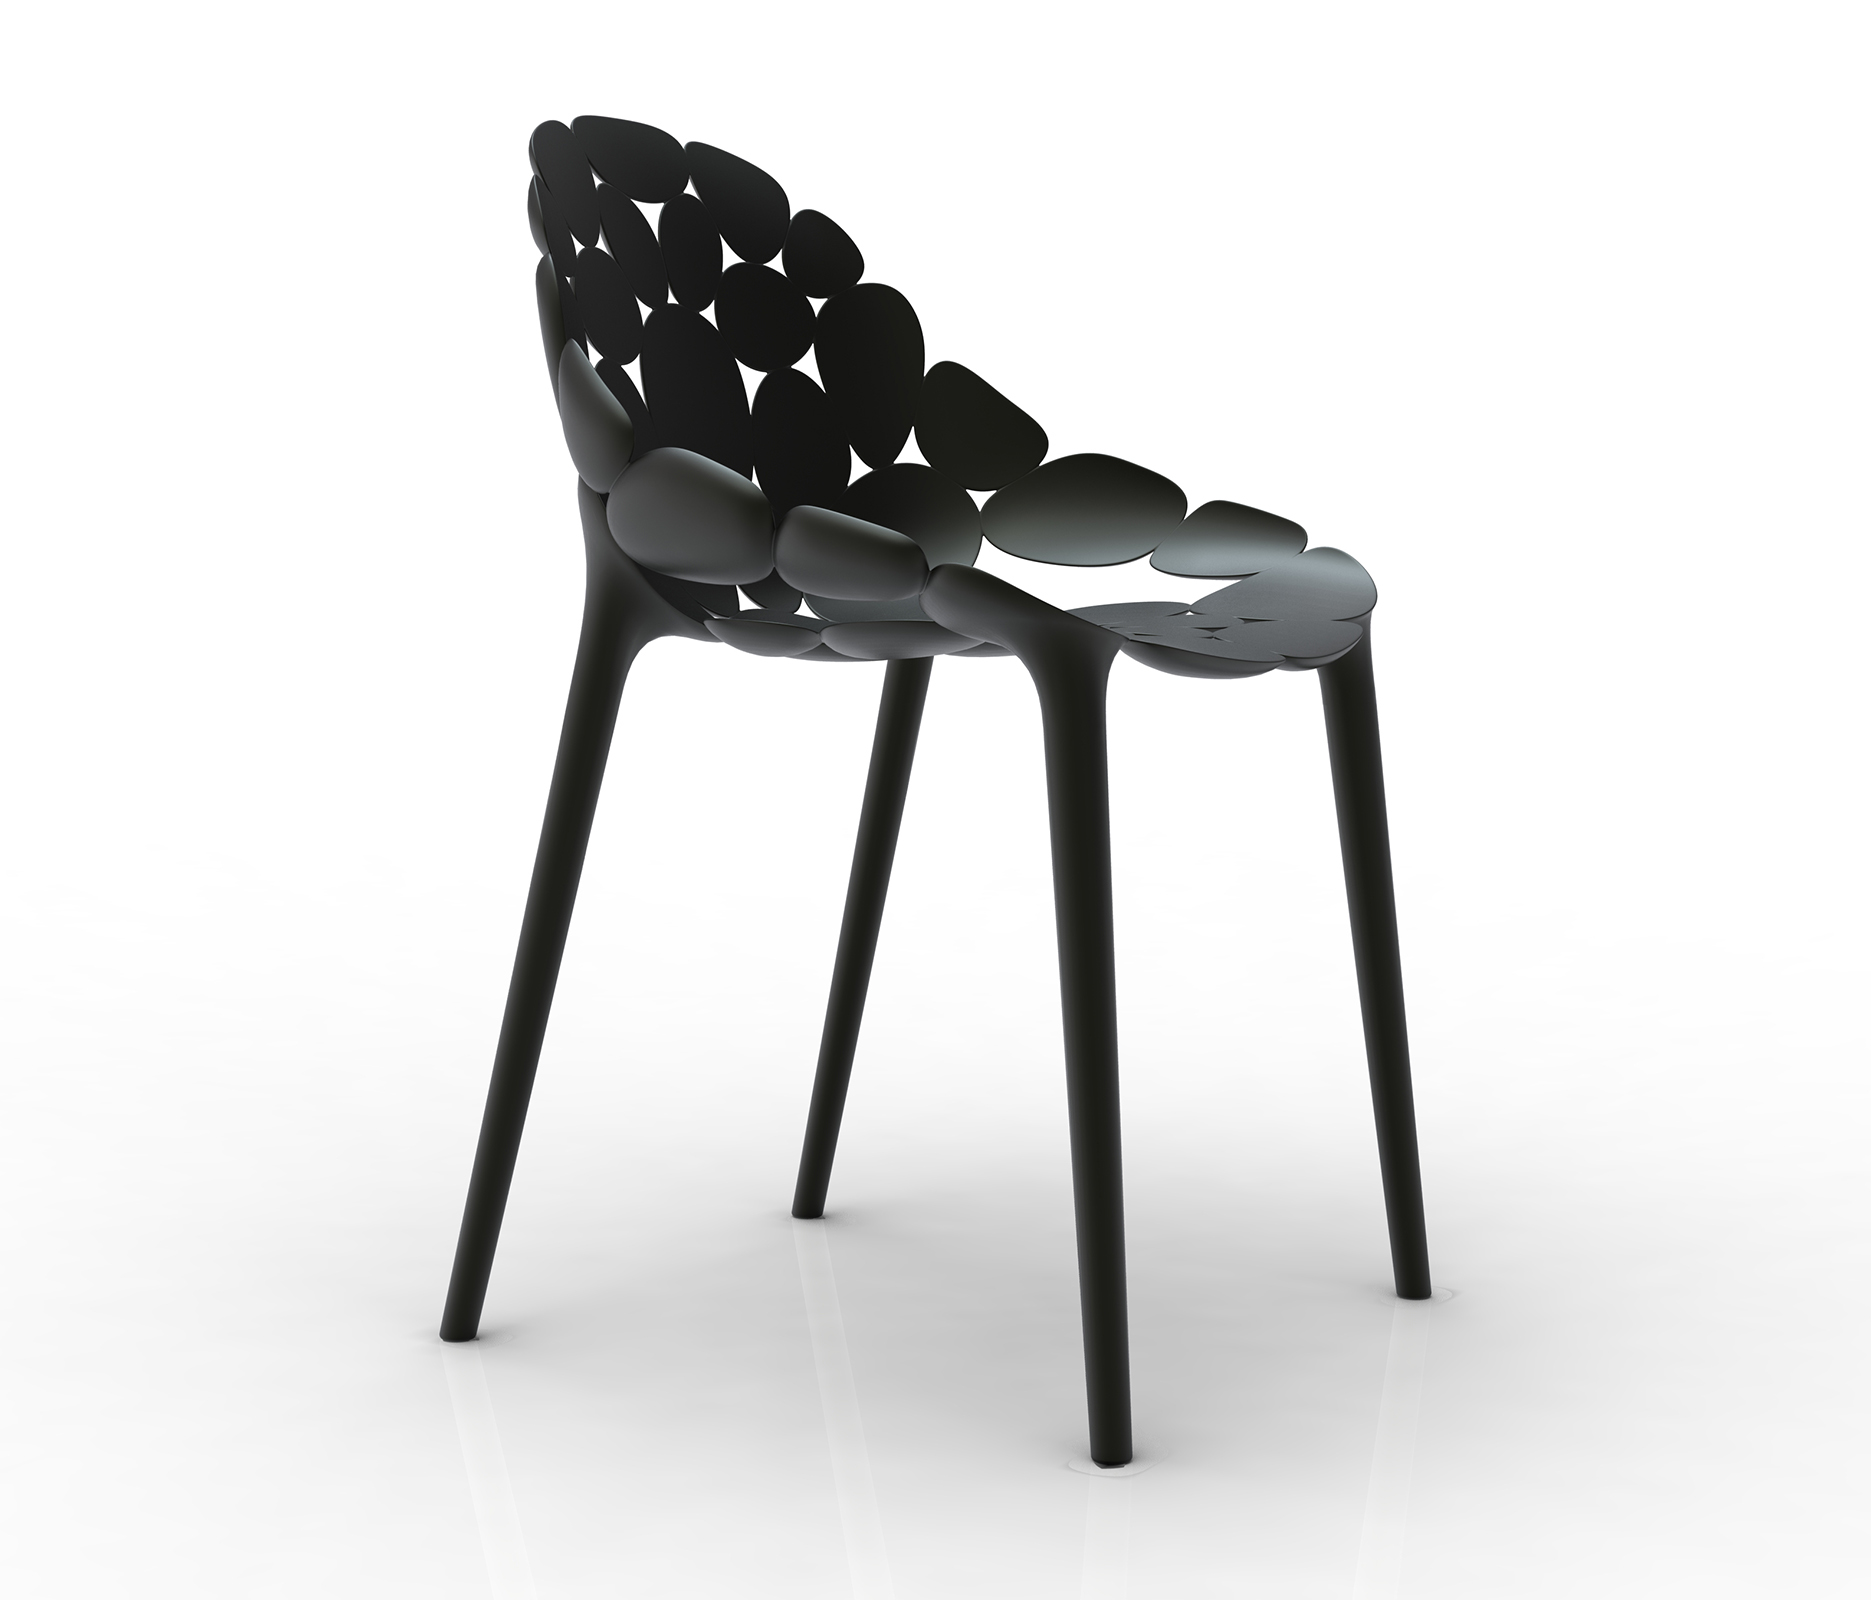 04_CLOUD-IO_chair_black_side